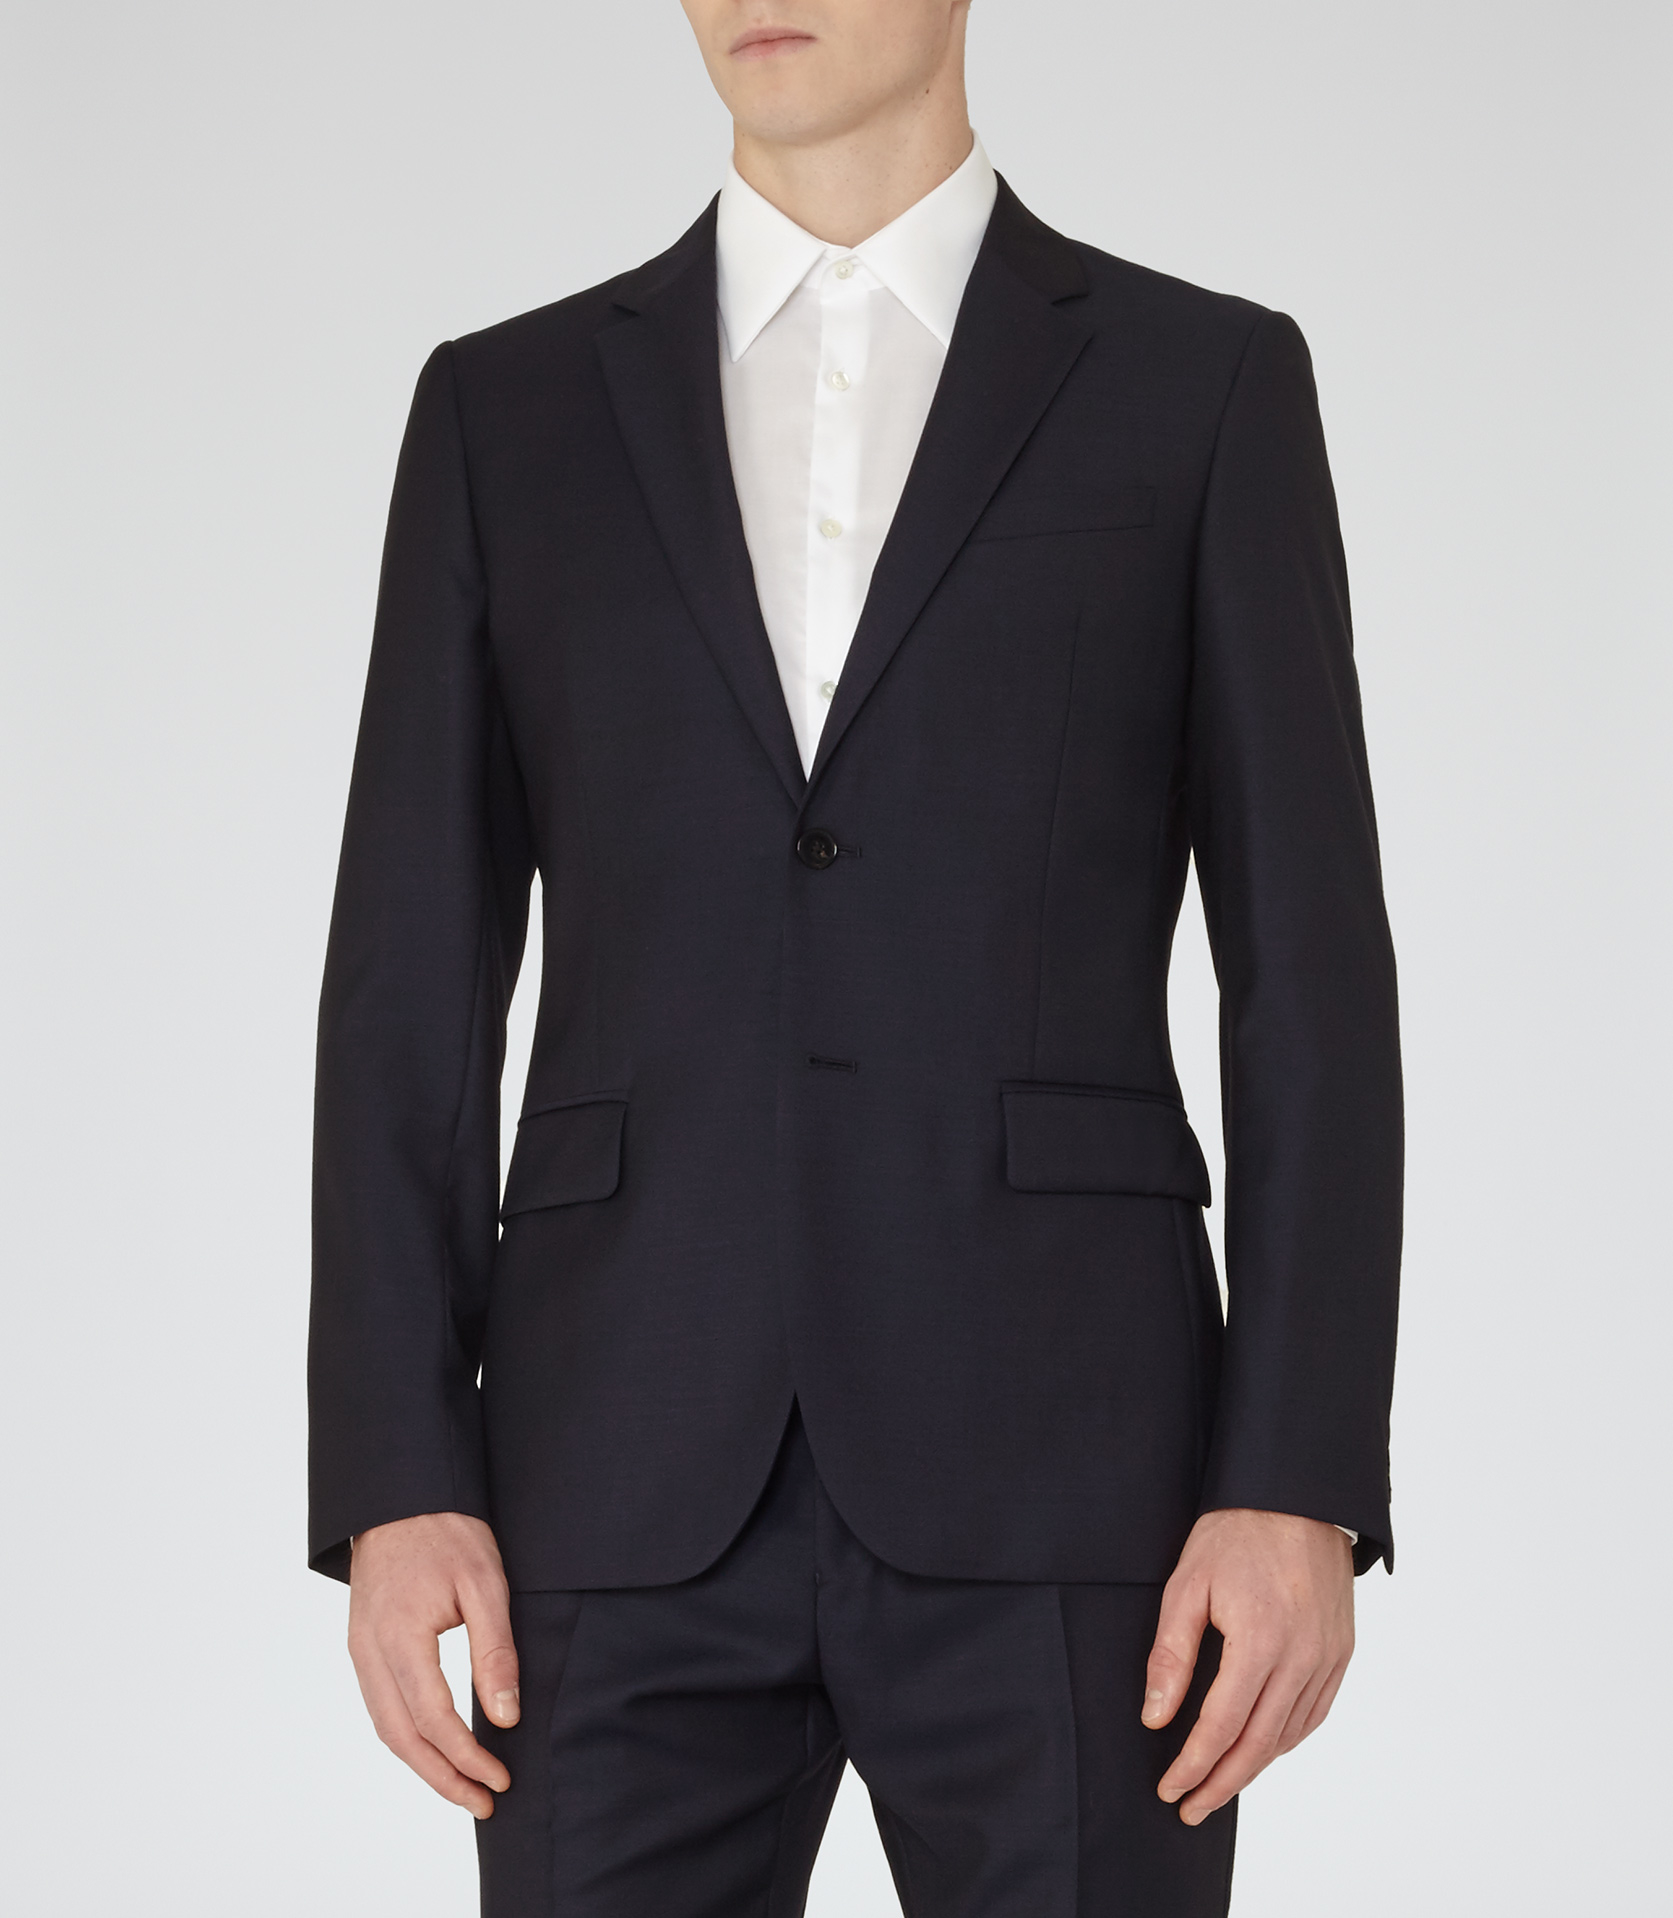 Reiss Harry B Modern Fit Blazer in Navy (Blue) for Men